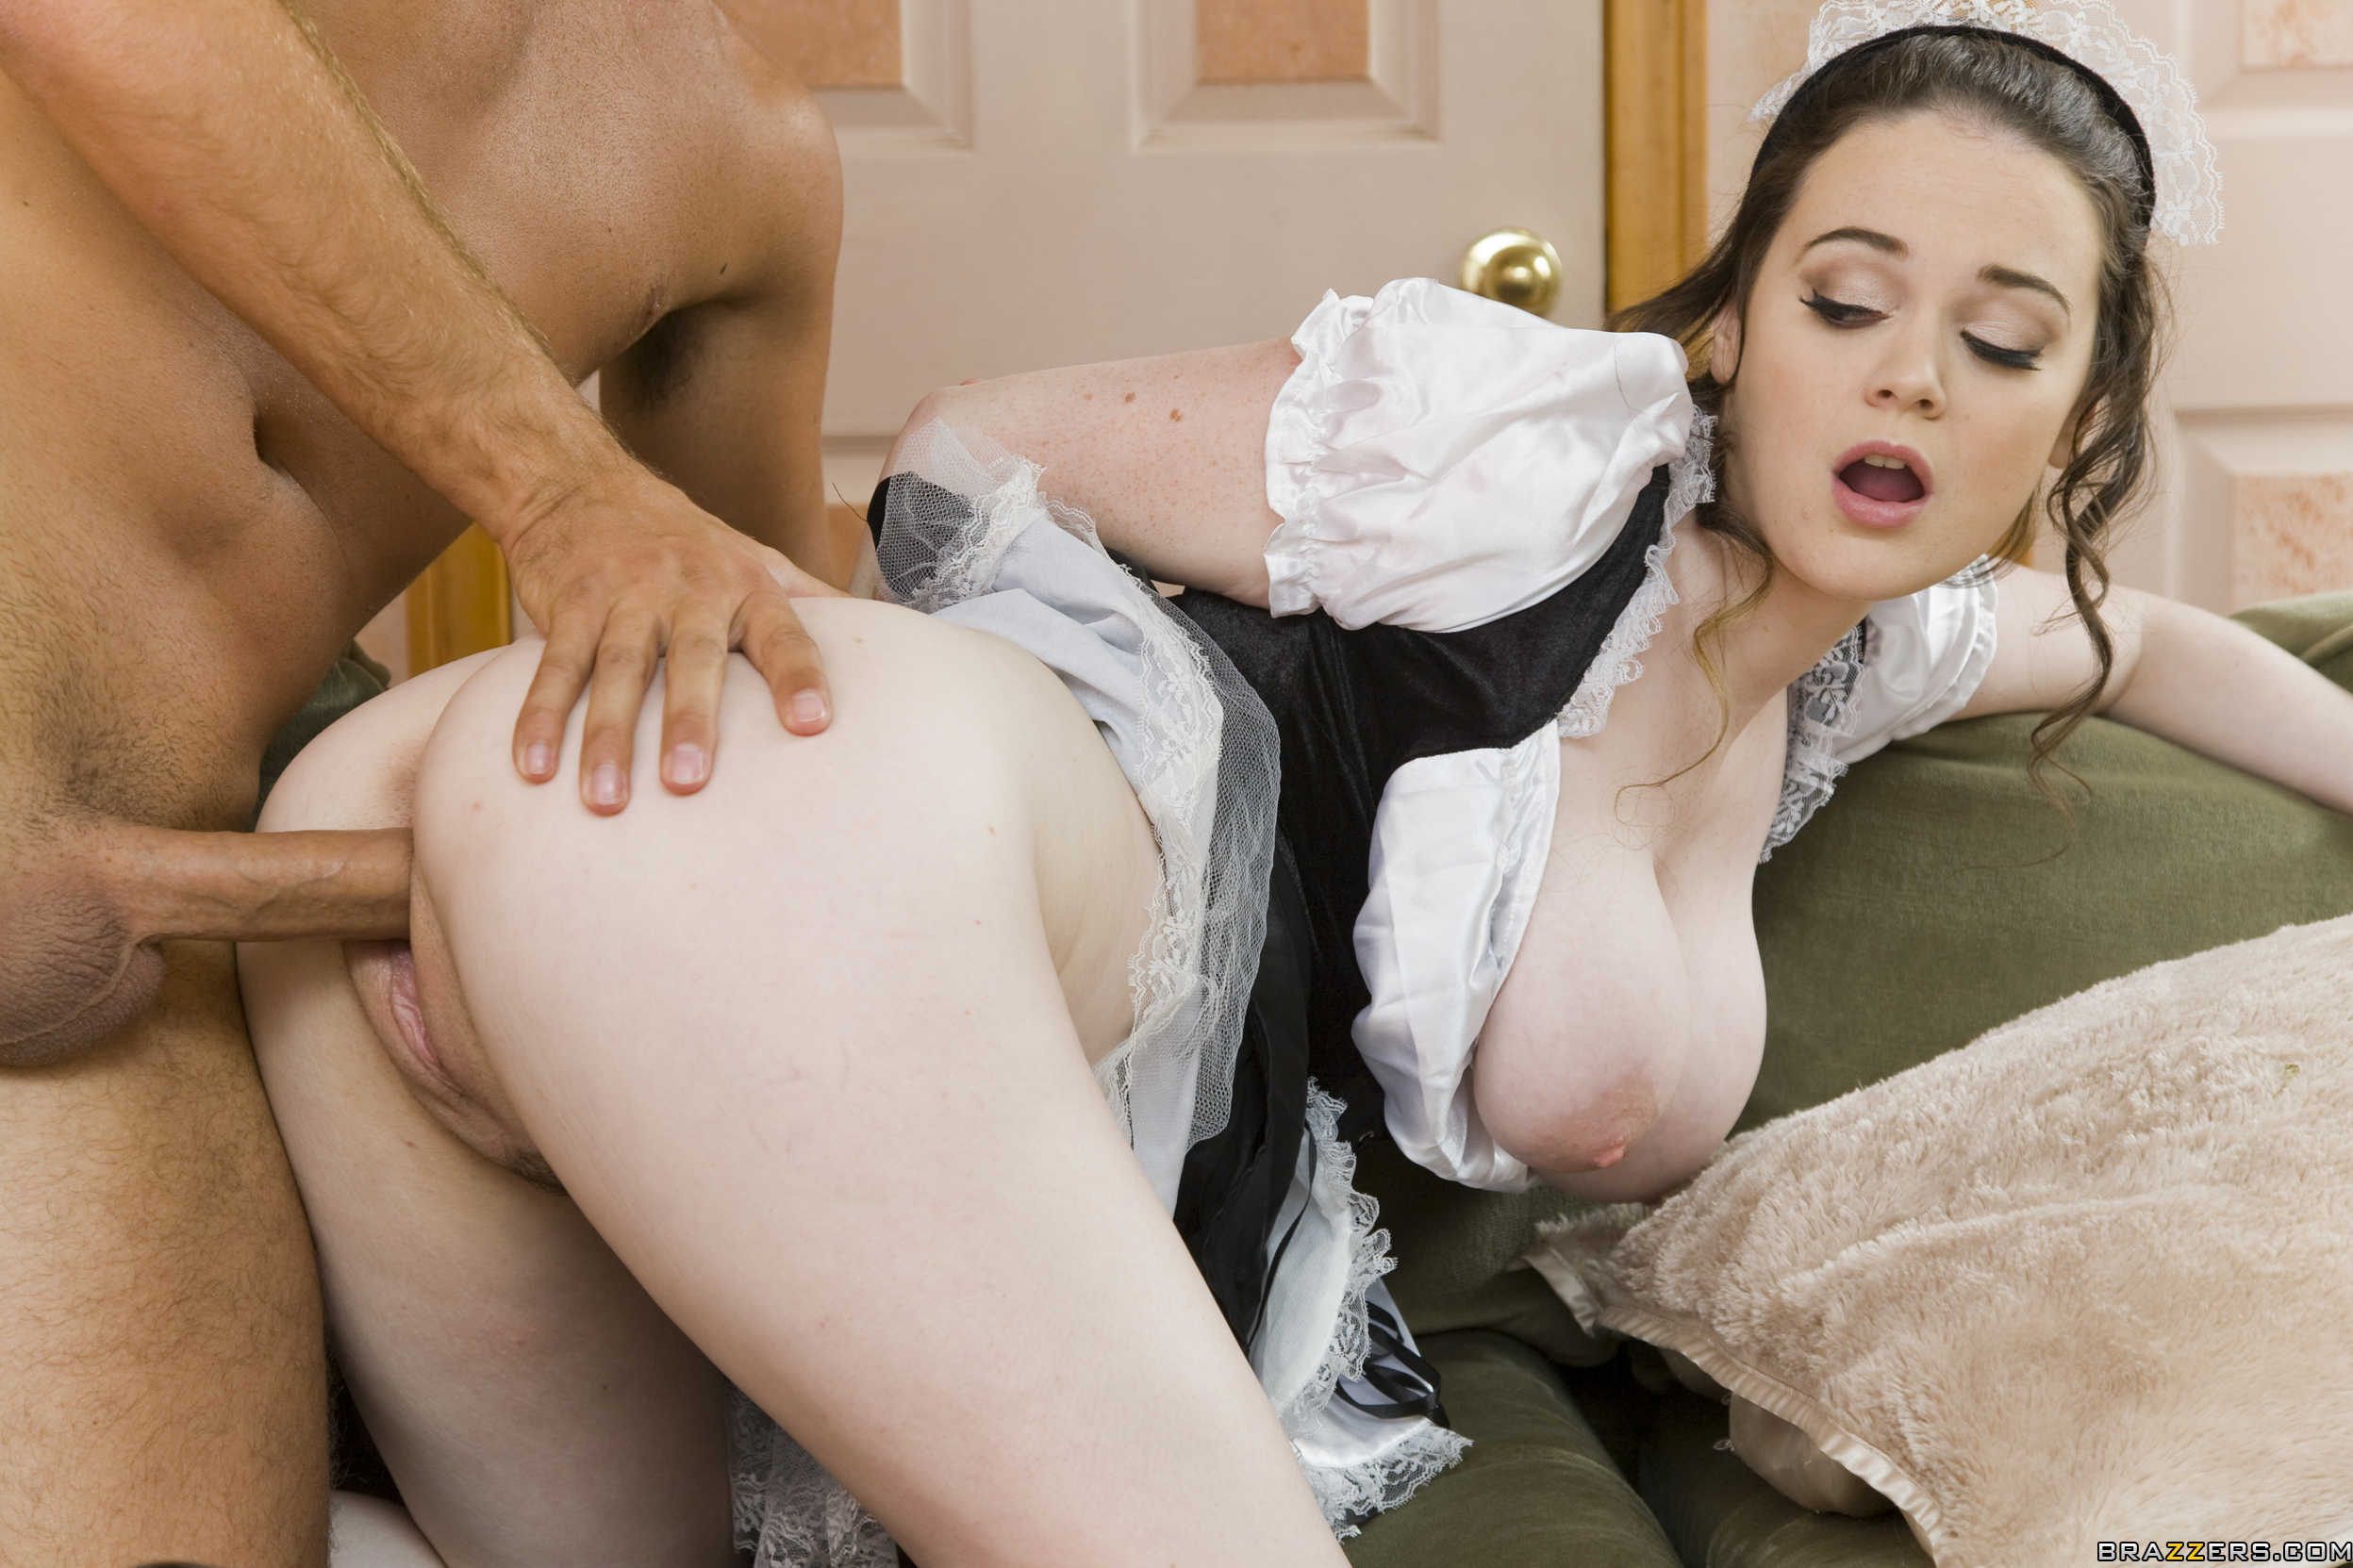 French maid porn